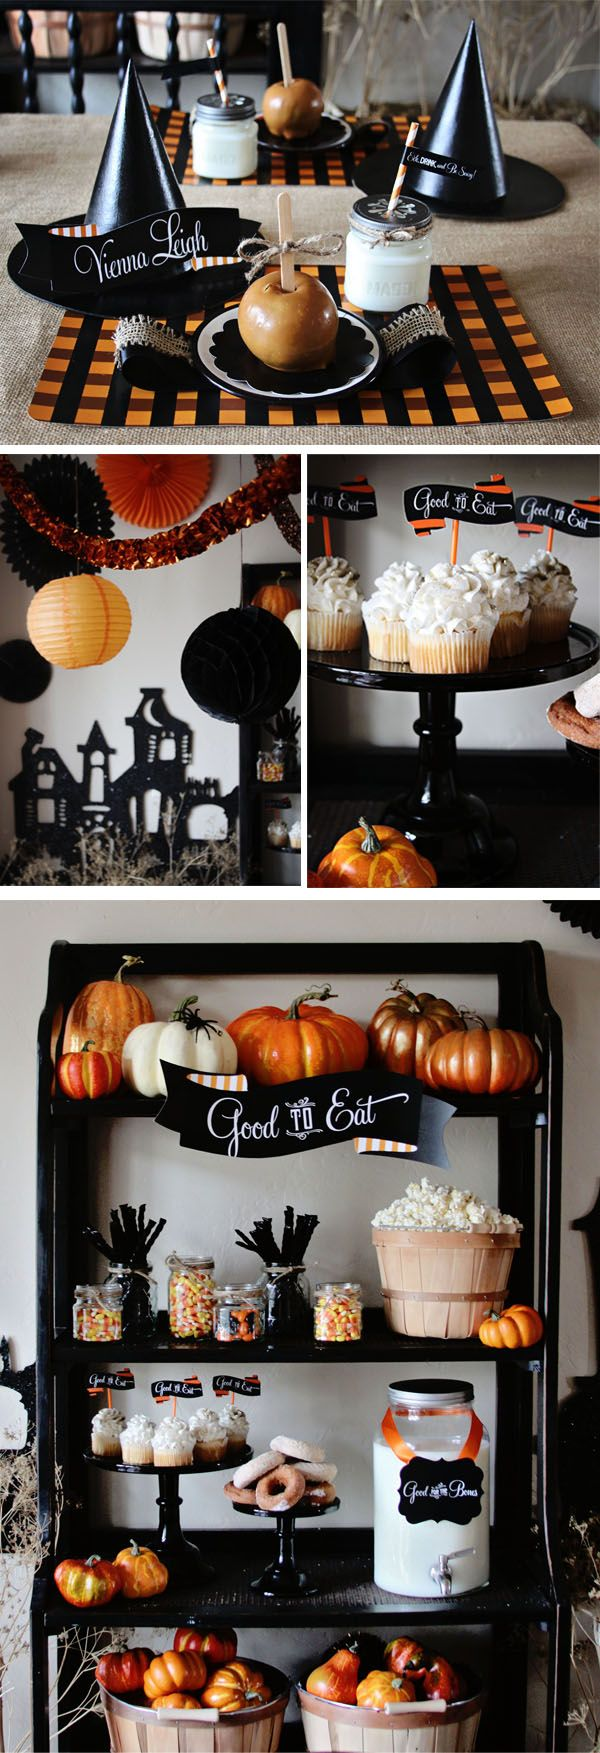 26 best halloween images on Pinterest | Crafts, Halloween party ...